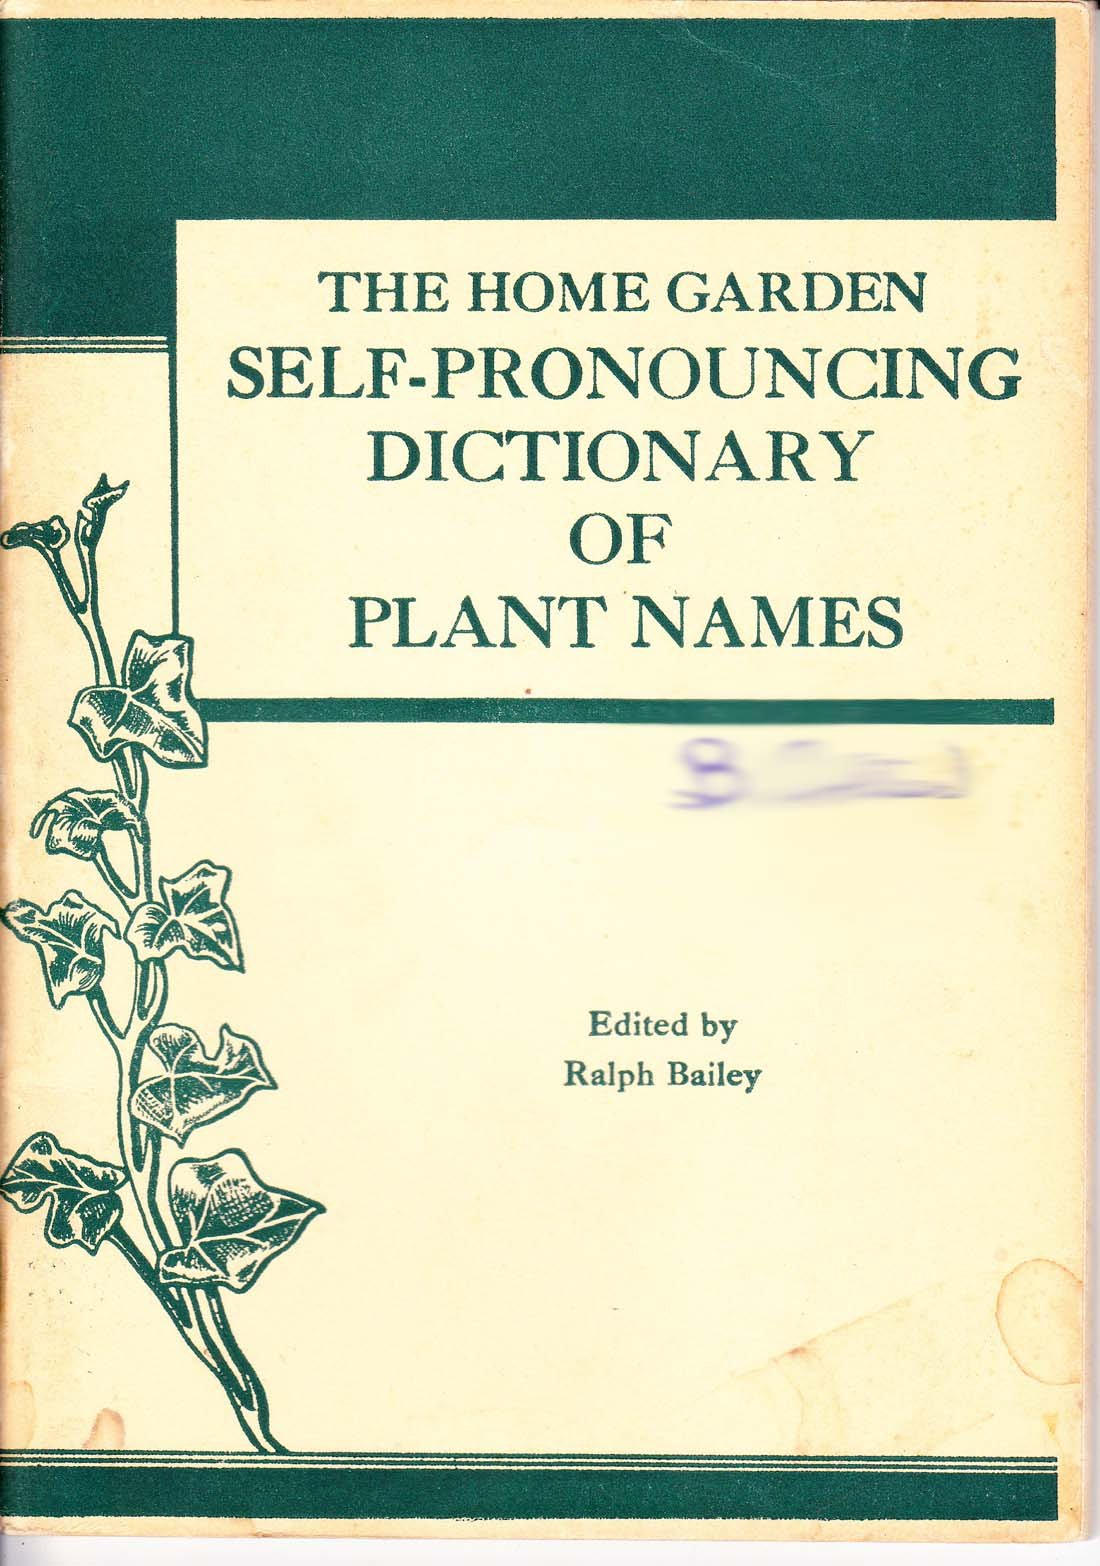 The home garden self,pronouncing dictionary of plant names